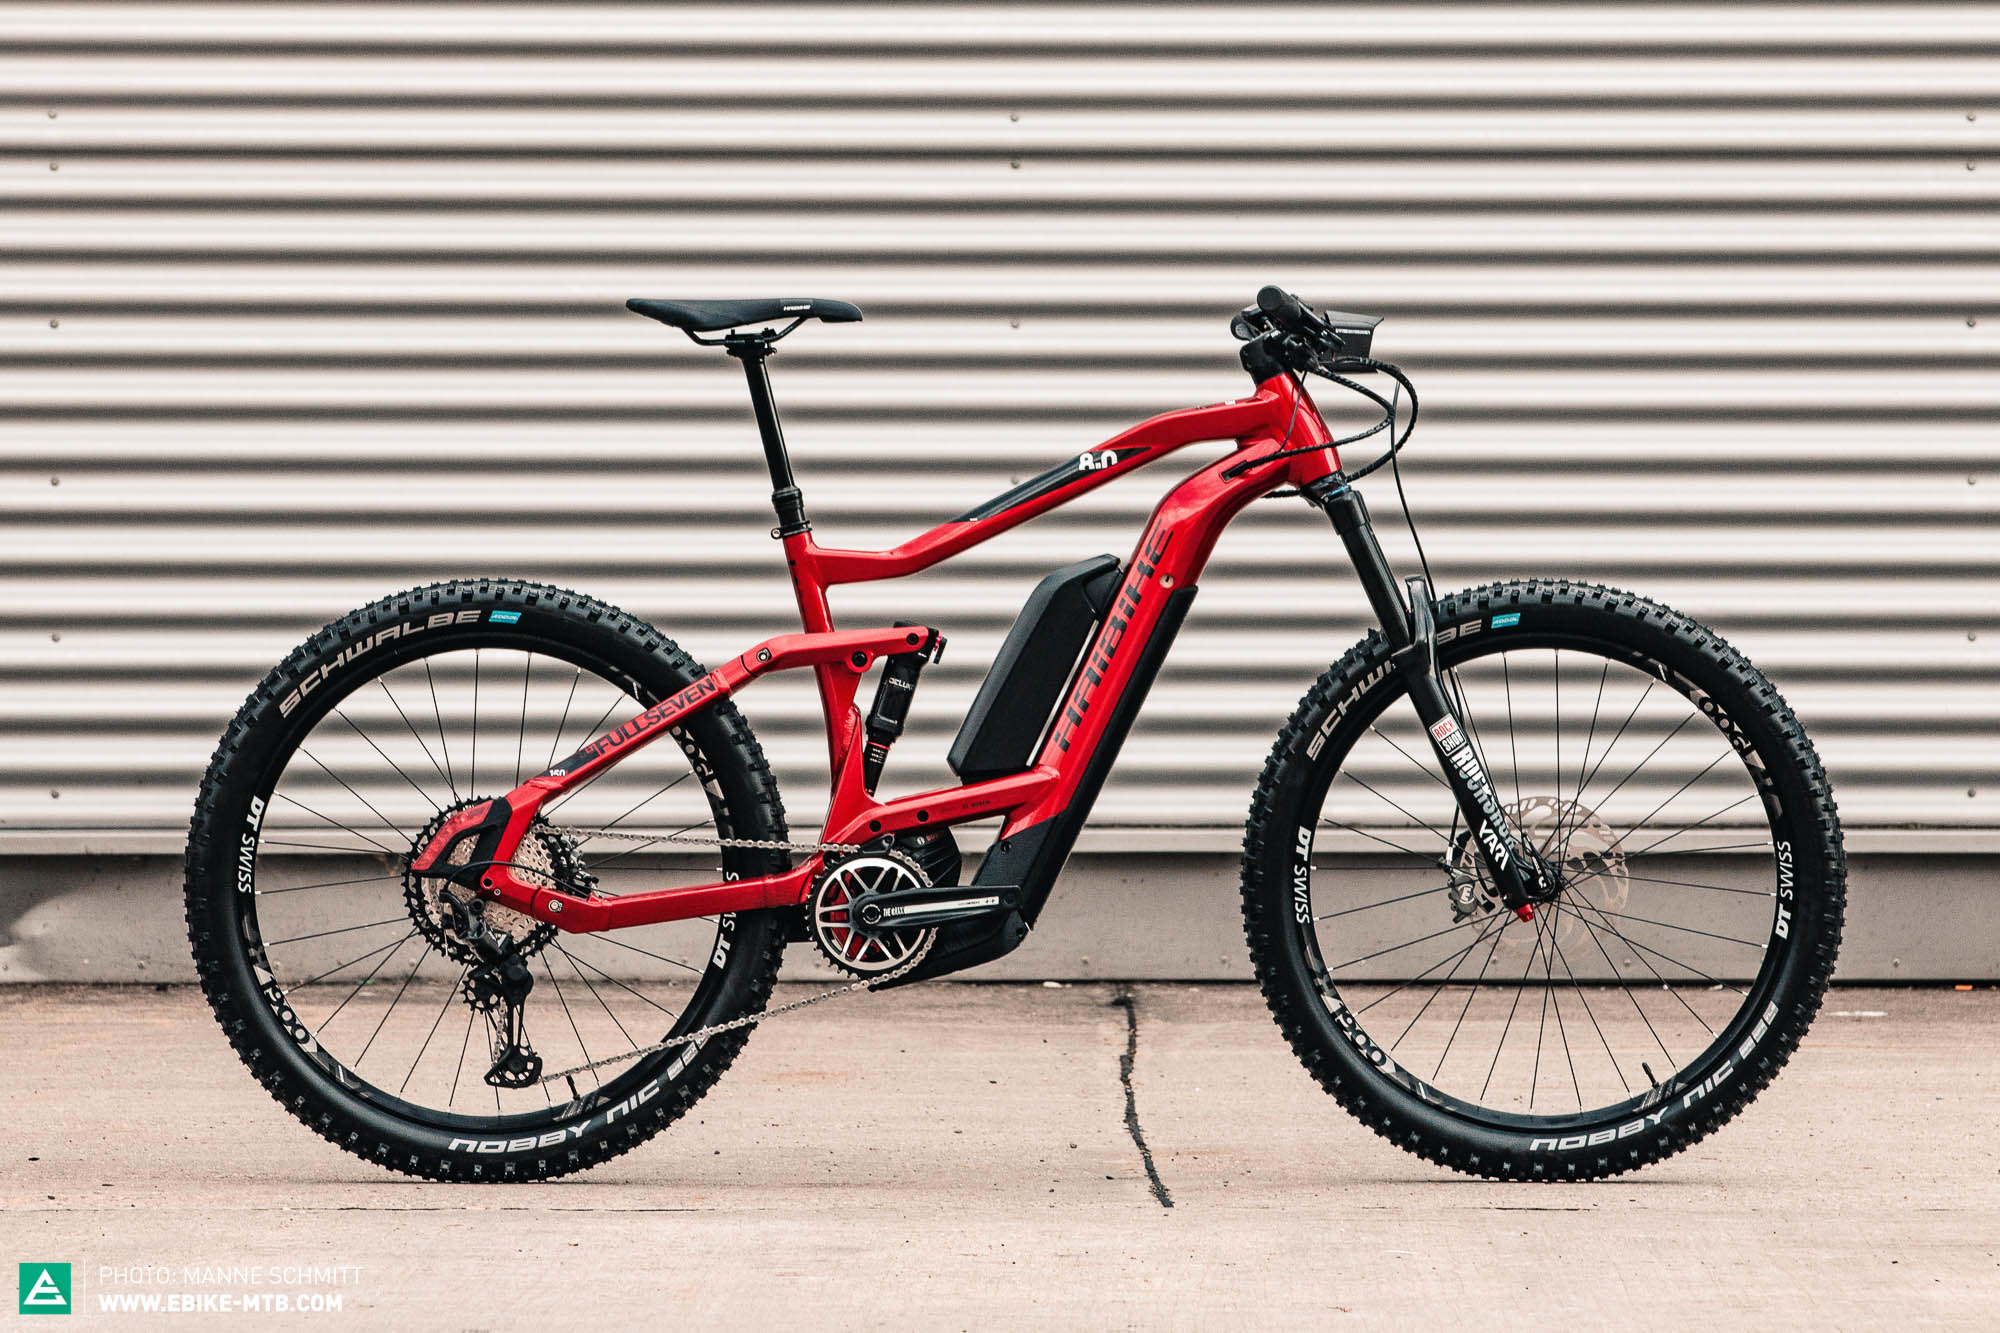 Haibike updates for 2020 – Bosch Gen4 motors with 1,125 Wh